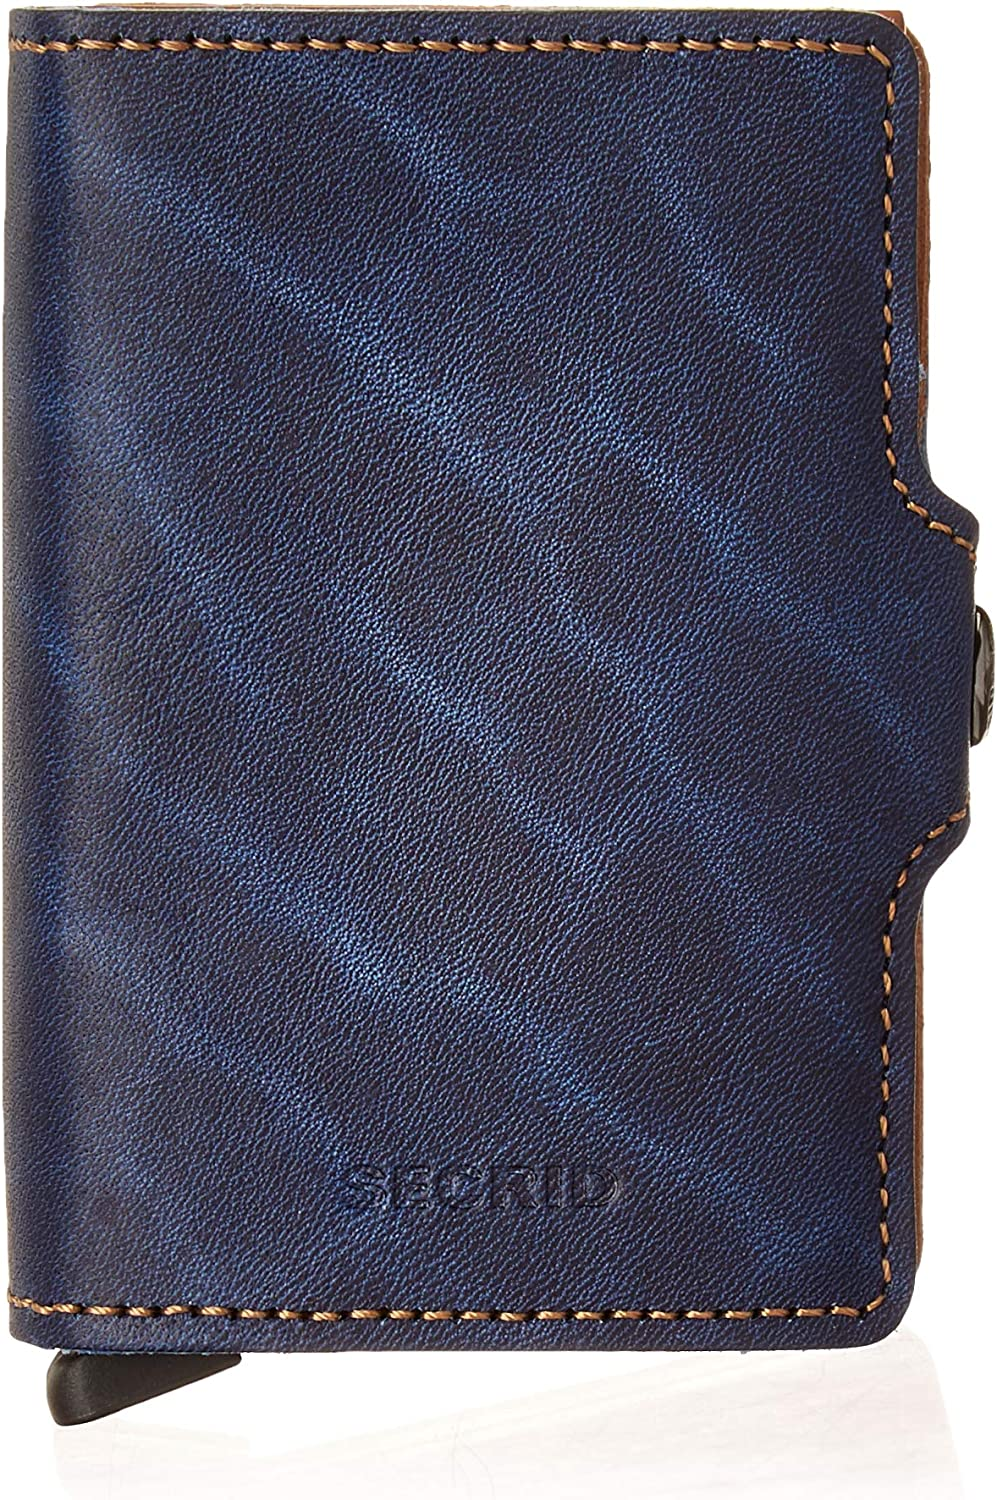 secrid Twin Wallet Genuine Leather with RFID Protecton, Holds up to 16 Cards (Indigo)